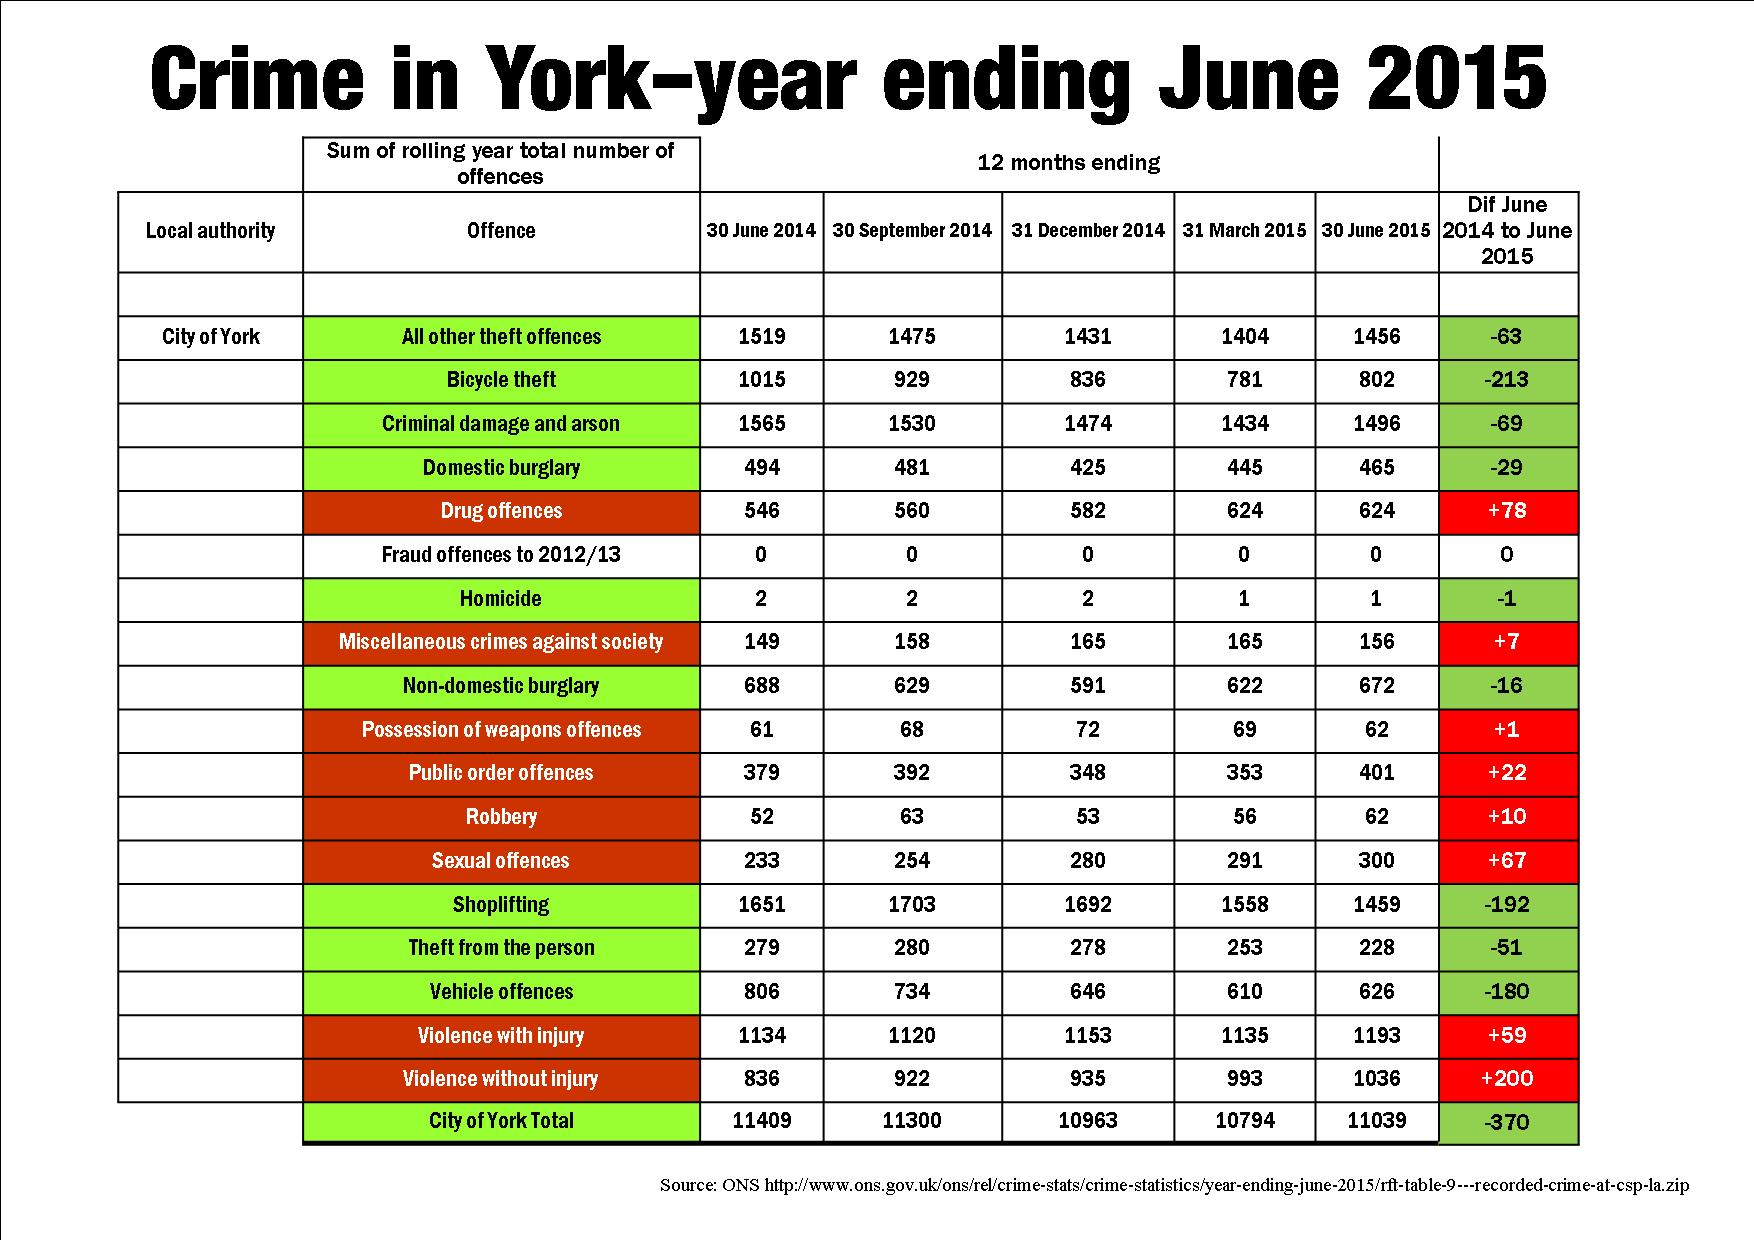 Crime figs to June 2015